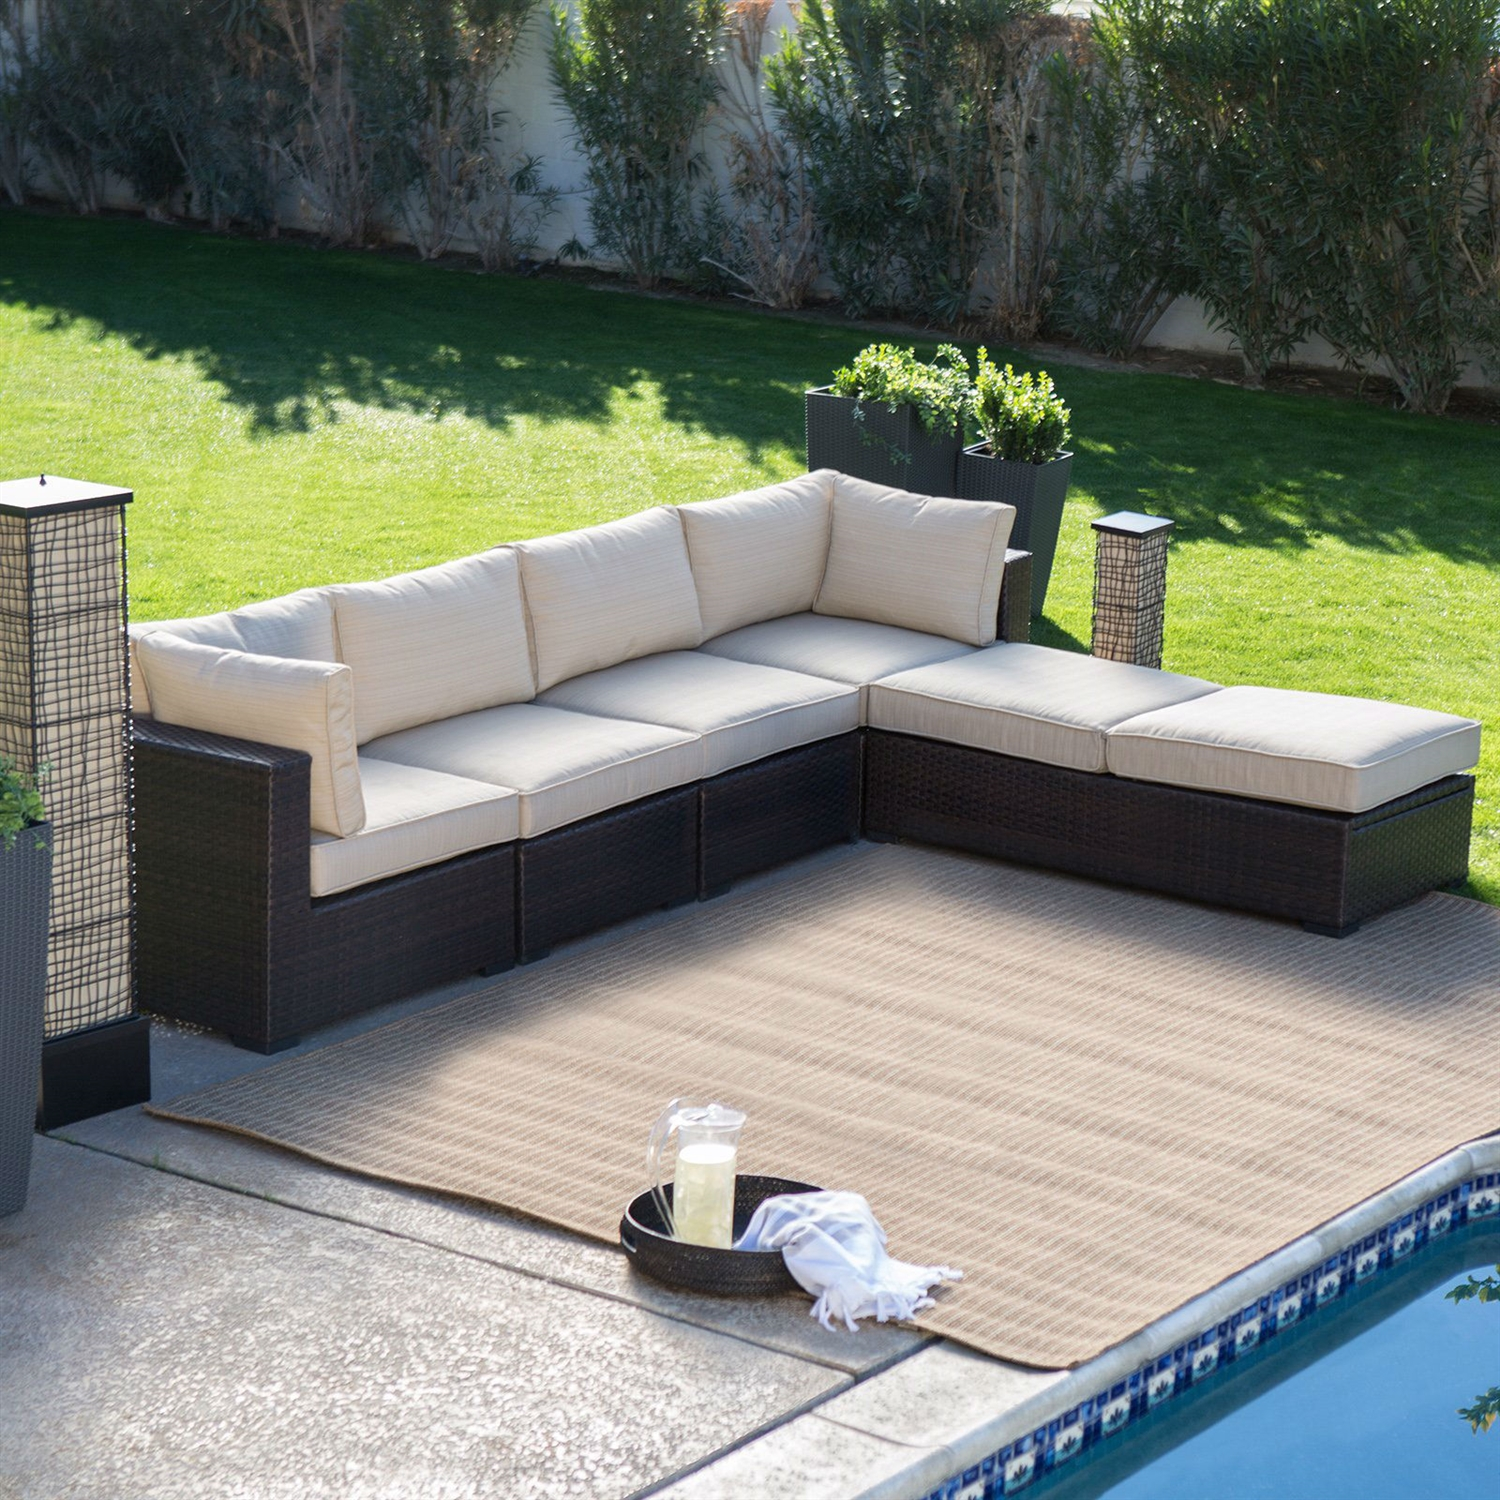 Outdoor Wicker Resin 6 Piece Sectional Sofa Patio Furniture Conversation Set With Tan Stripe Cushions Fastfurnishings